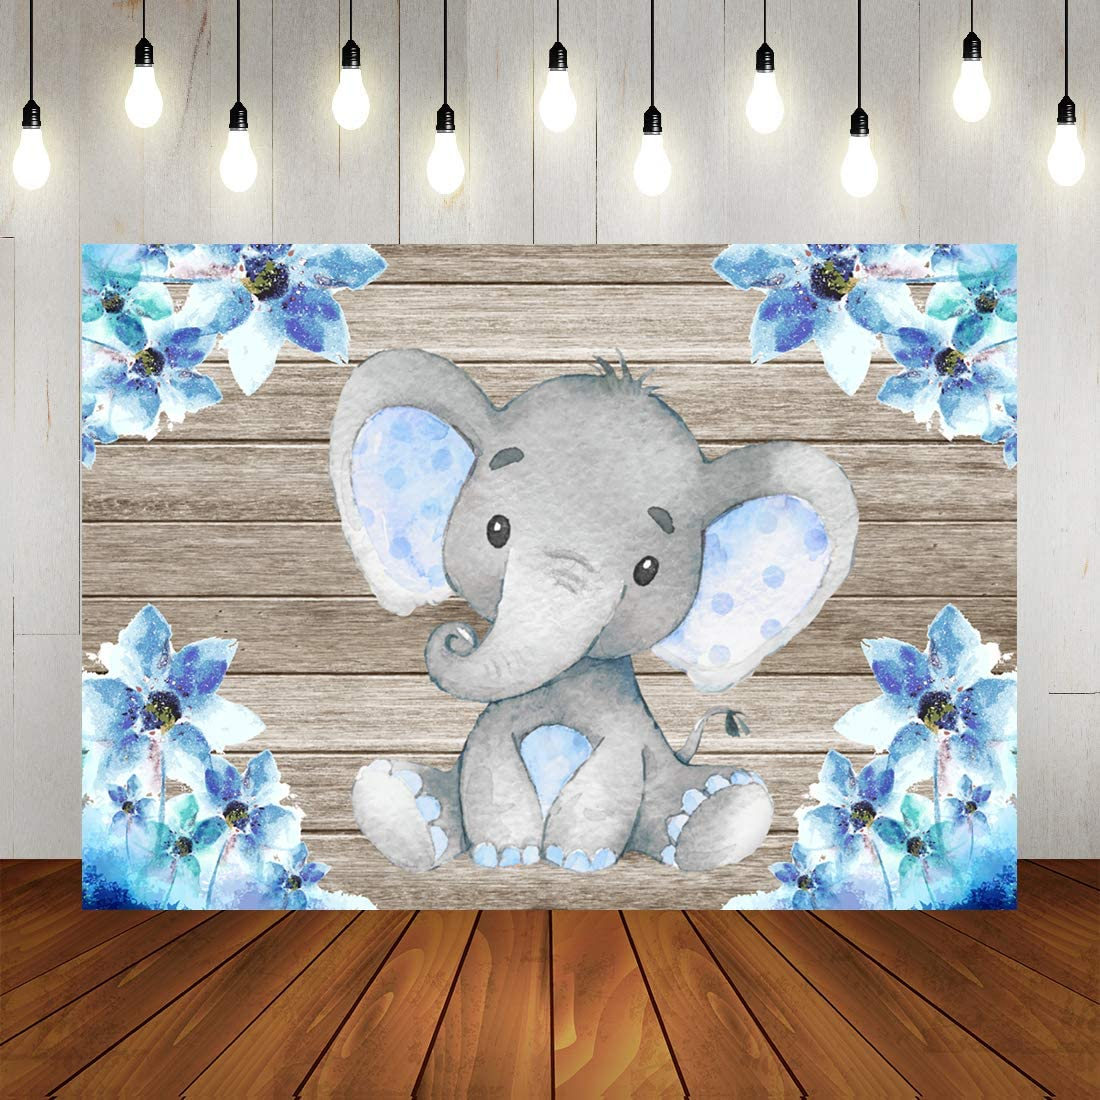 Boy Elephant Baby Shower Backdrop Watercolor Blue Floral Elephant Birthday Photography Background A Little Prince Newborn Baby Party Decorations Photo Studio Props 7x5ft